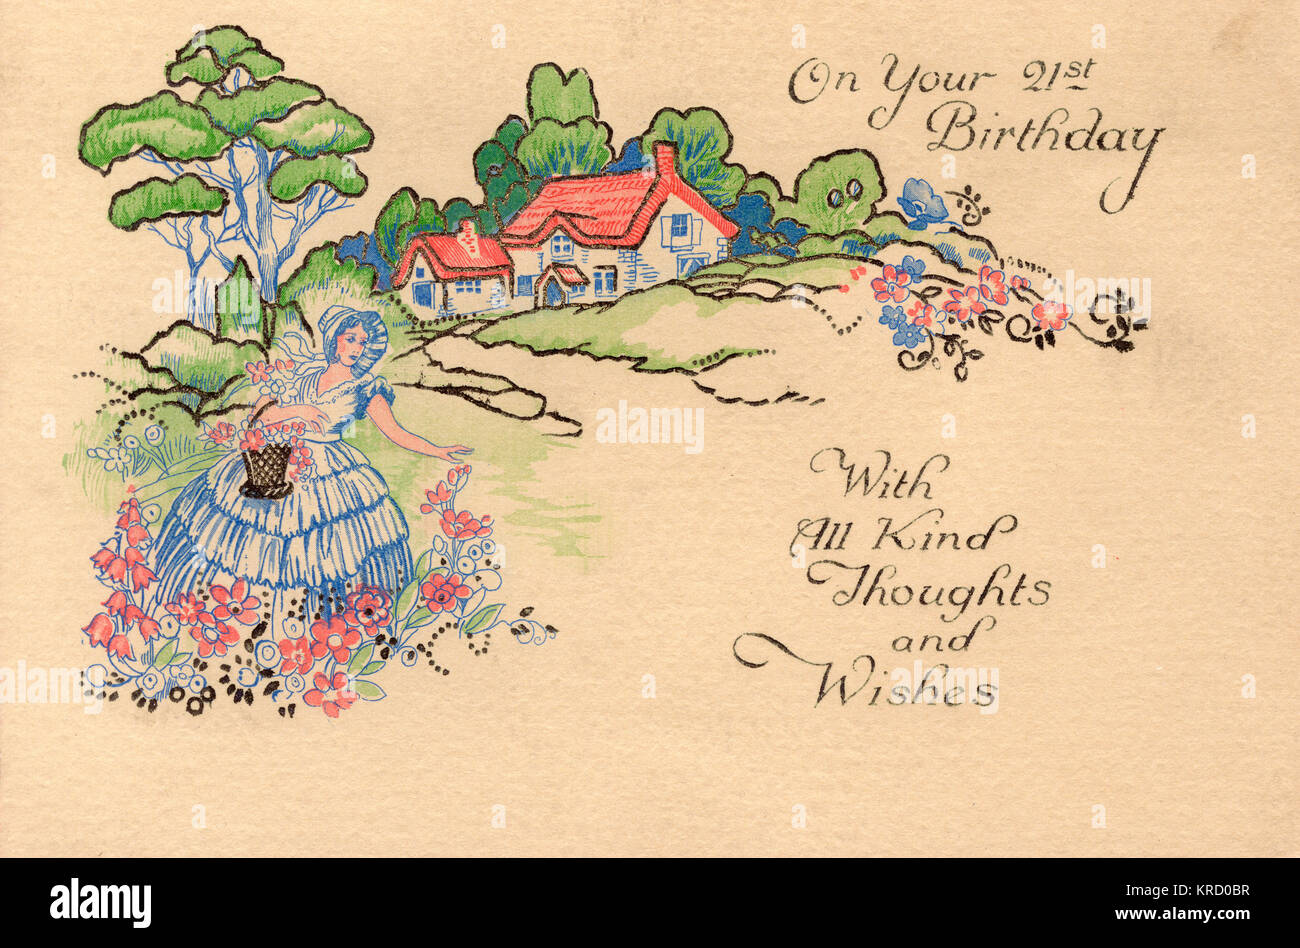 A 21st birthday card, showing a lady in a bonnet and crinoline dress gathering flowers in an idyllic cottage garden. - Stock Image